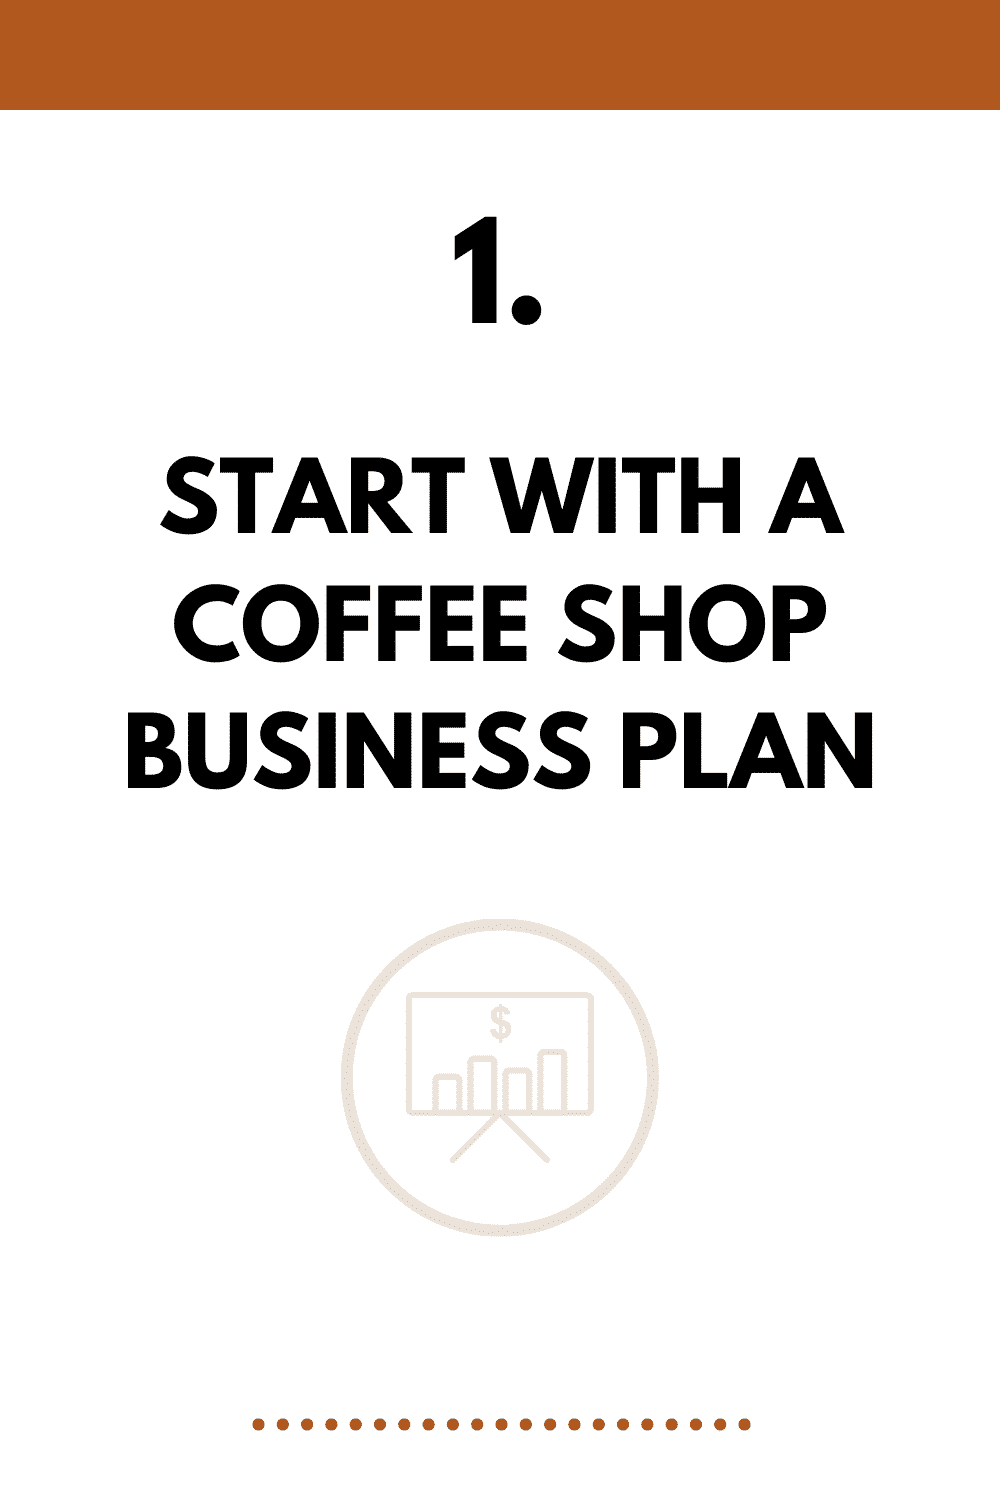 Start with a coffee shop business plan